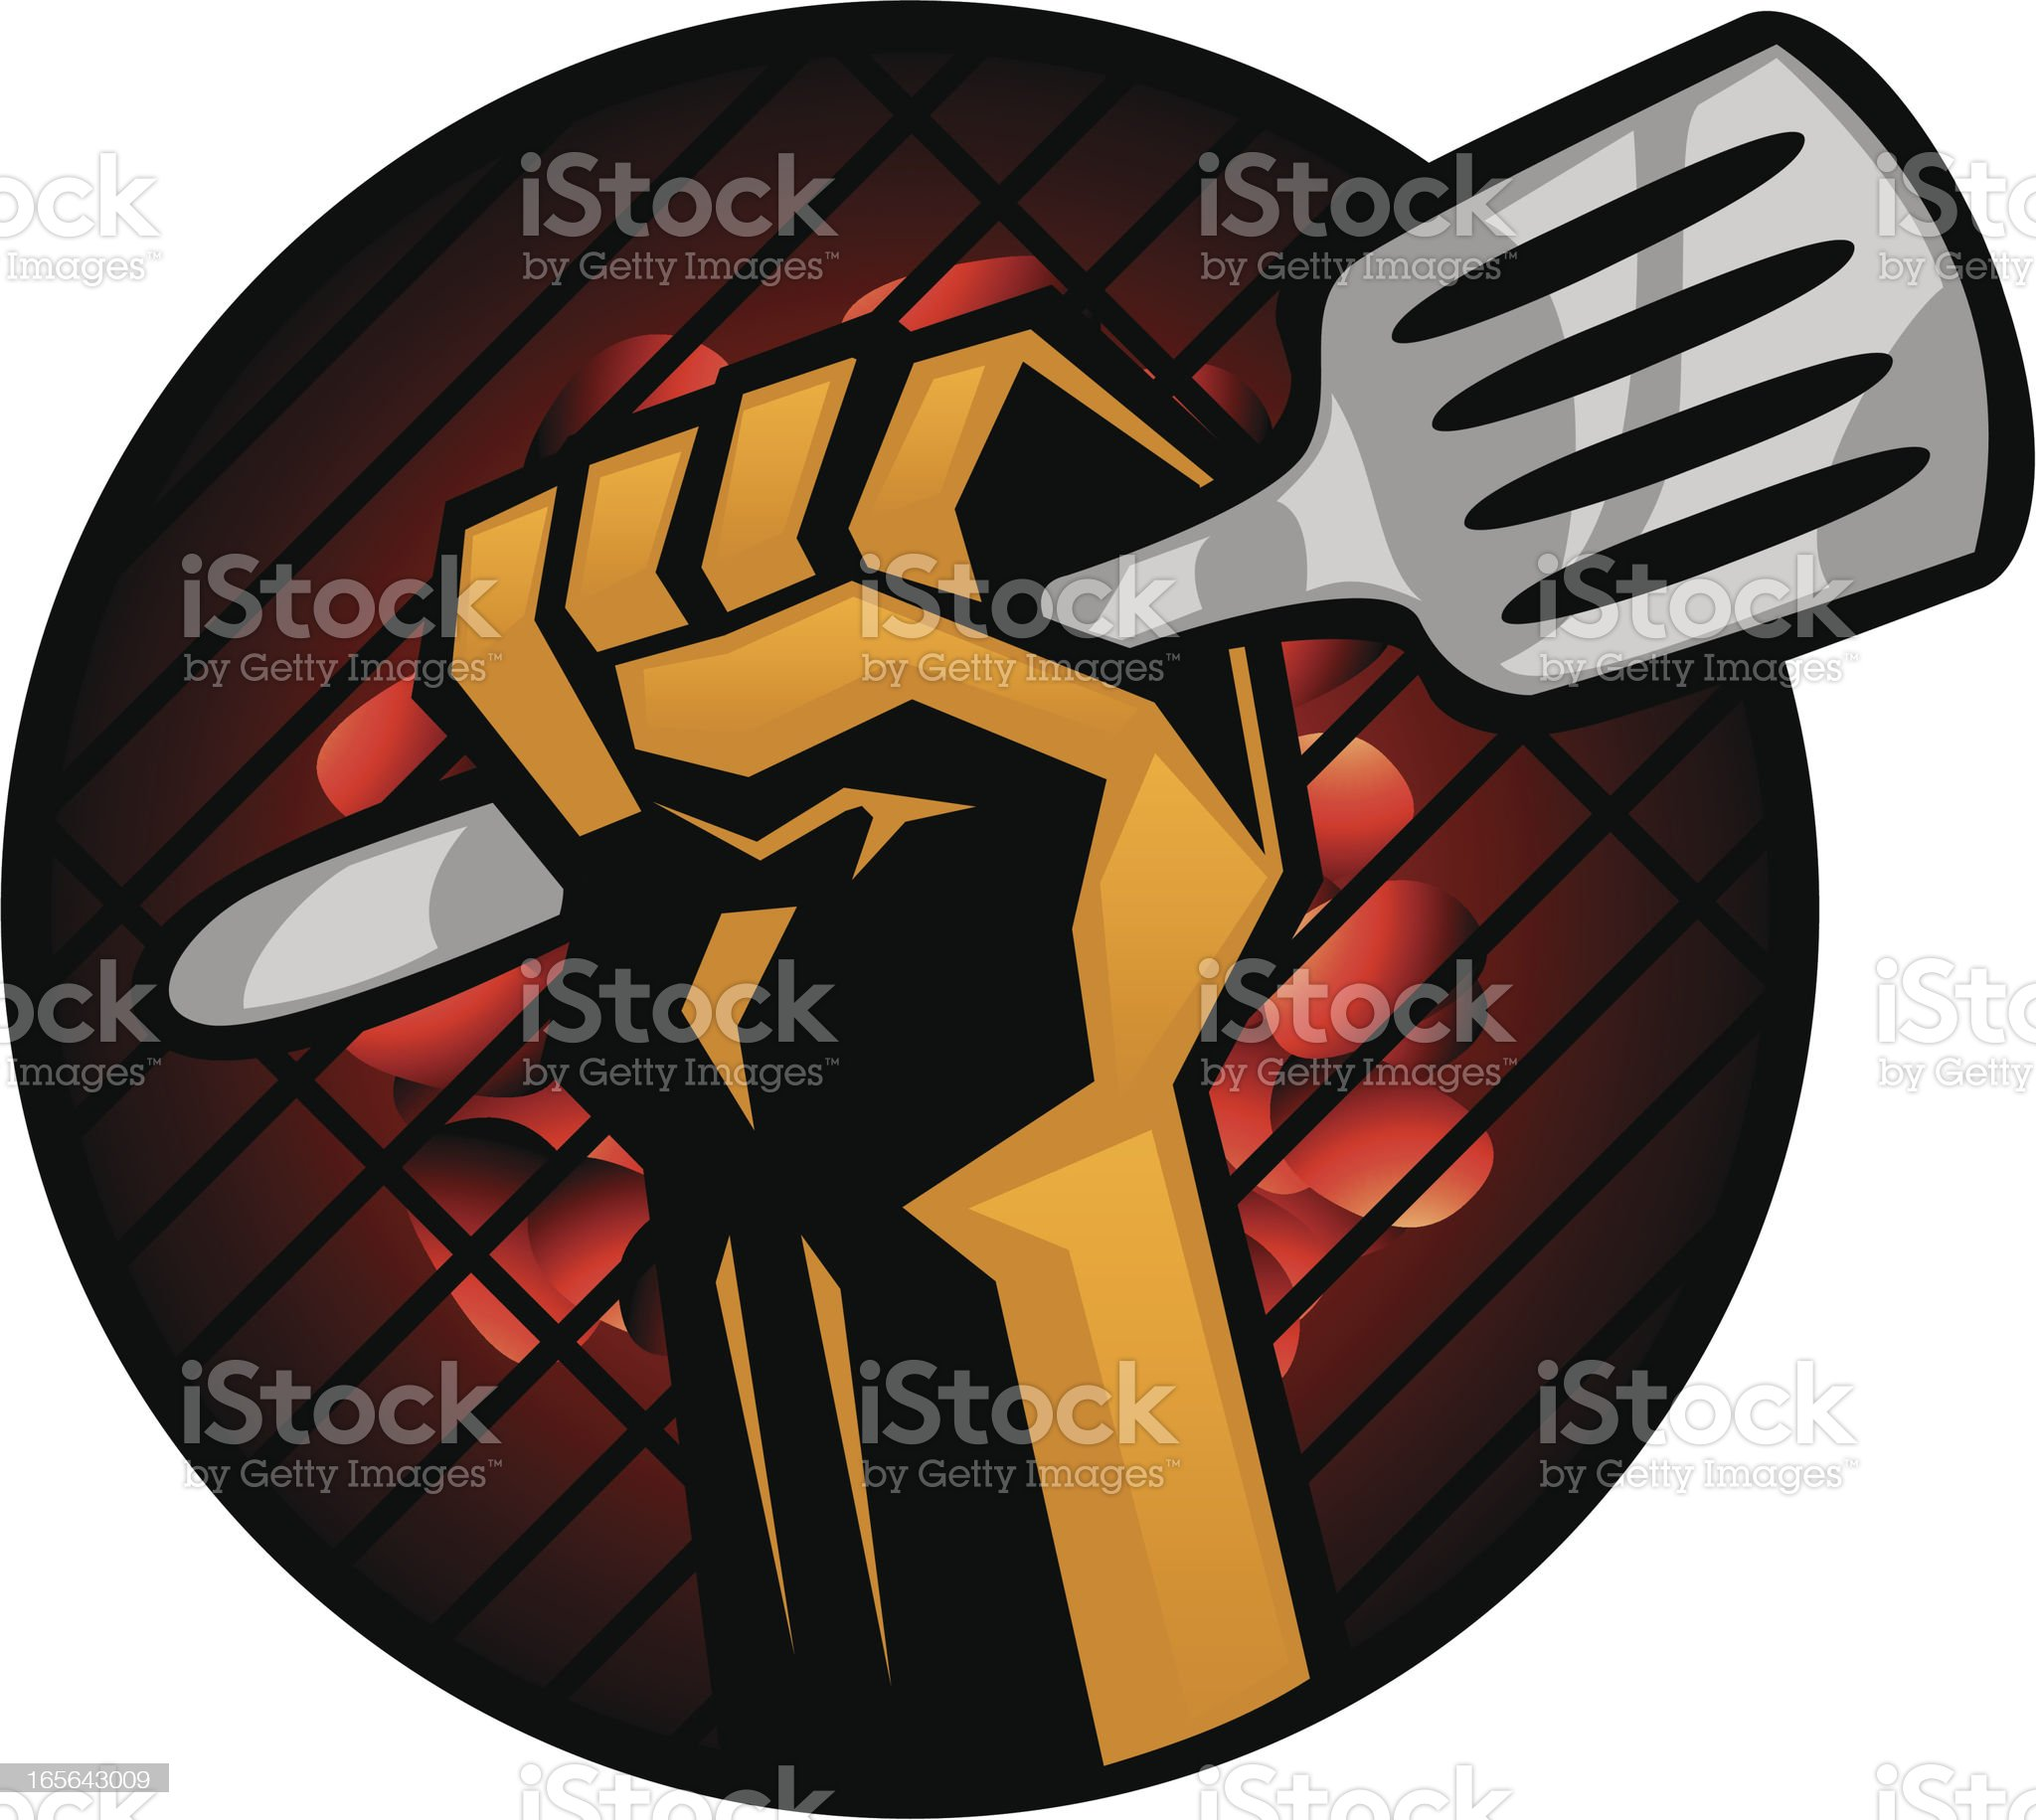 grill fist royalty-free stock vector art